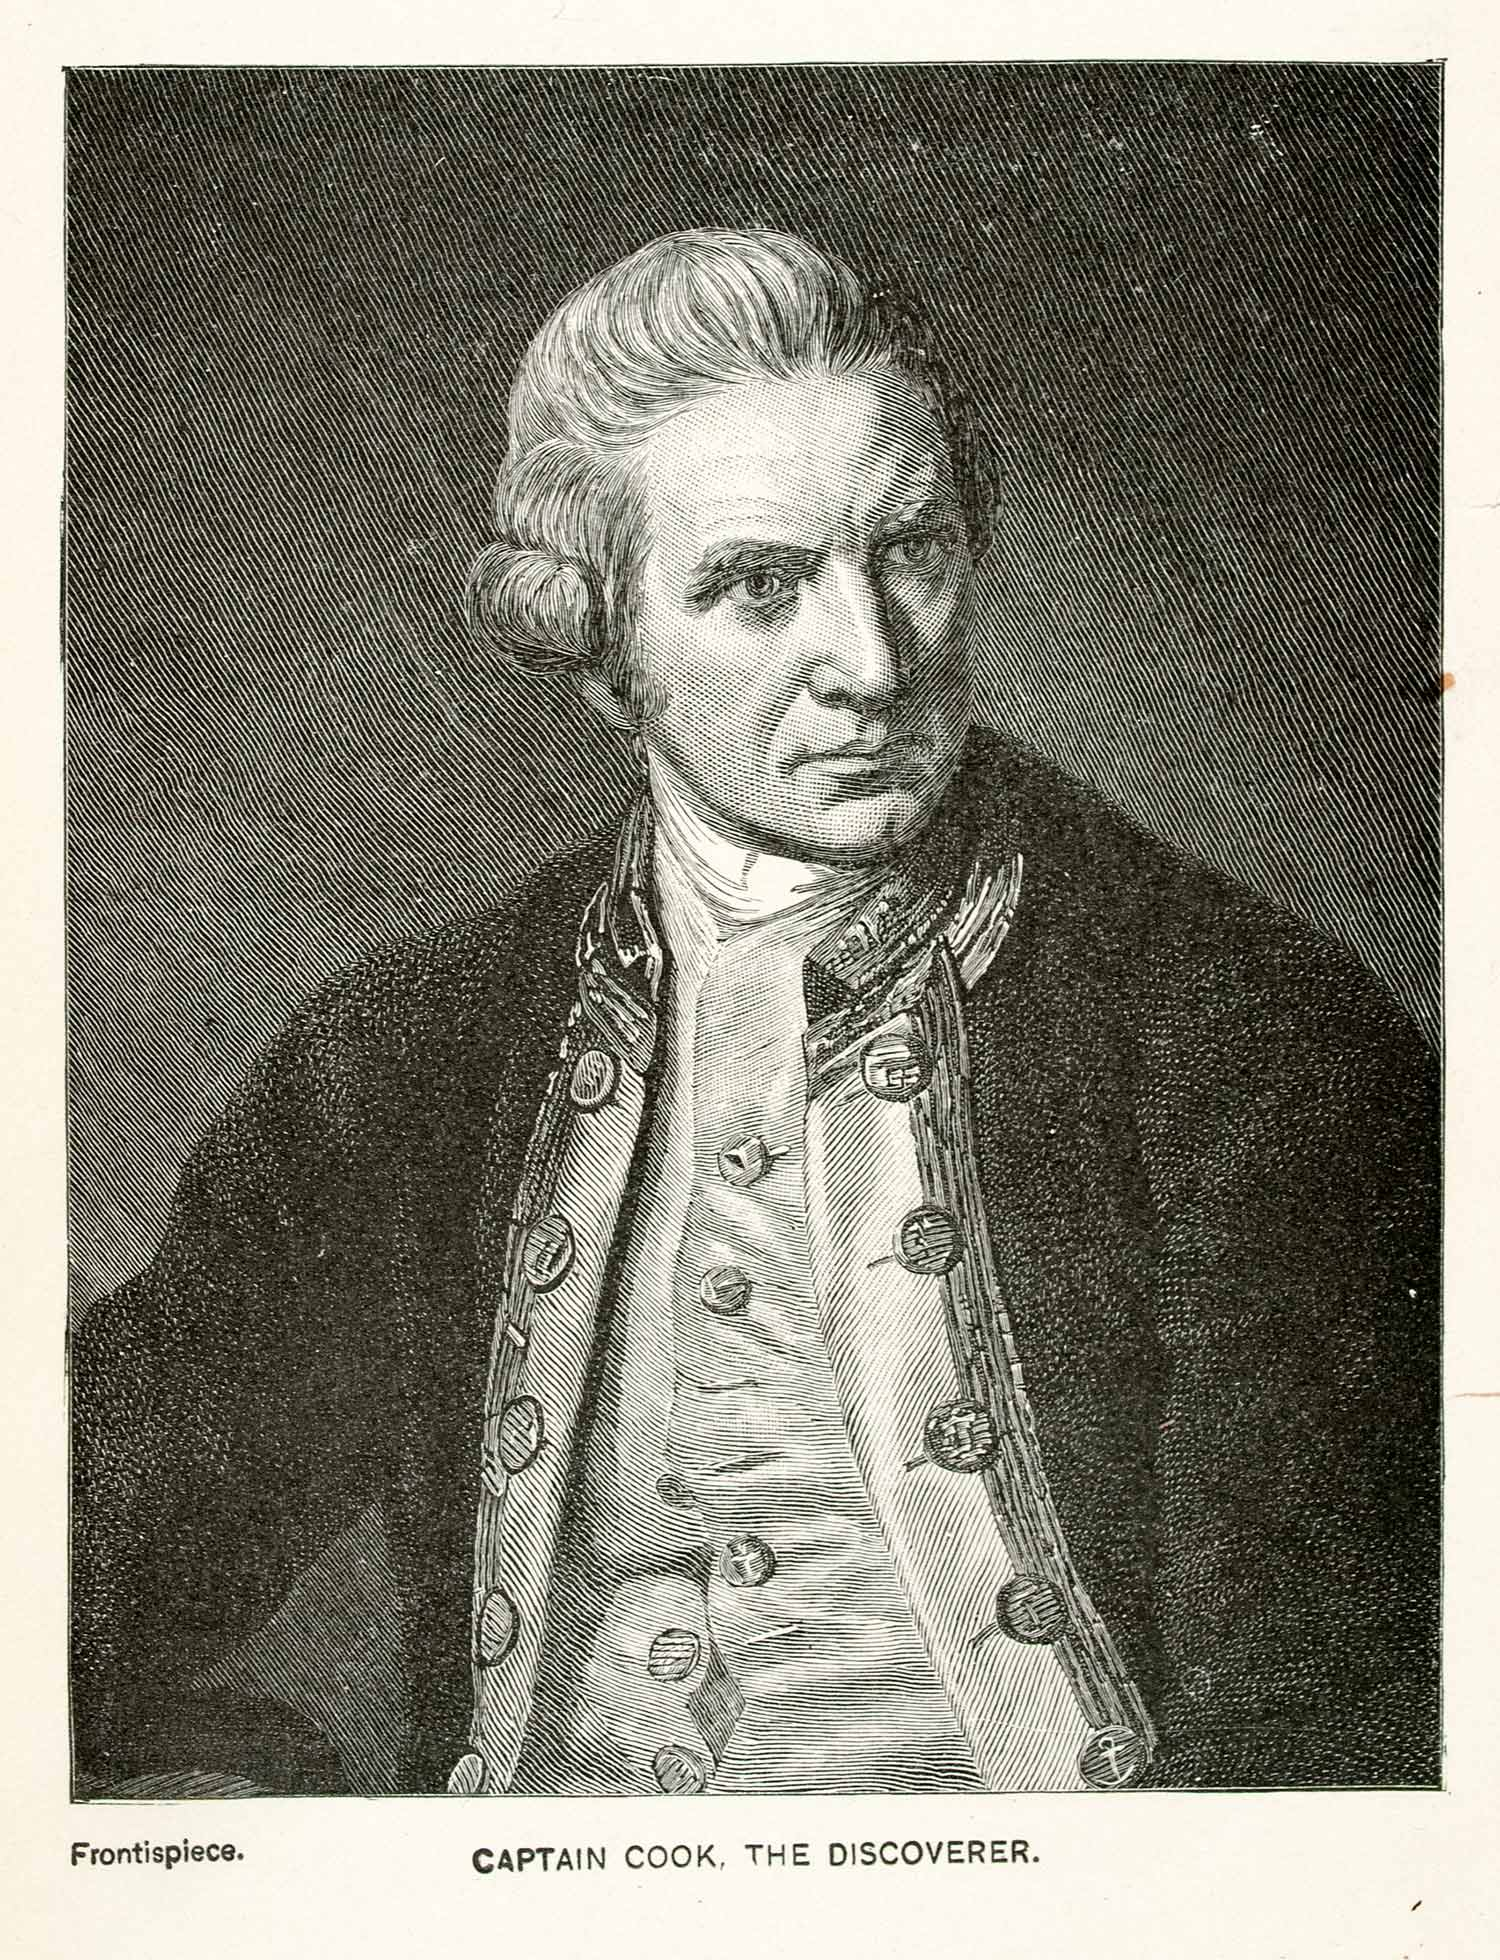 captain james cook Buy captain james cook by richard hough (isbn: 9780340825563) from amazon's book store everyday low prices and free delivery on eligible orders.